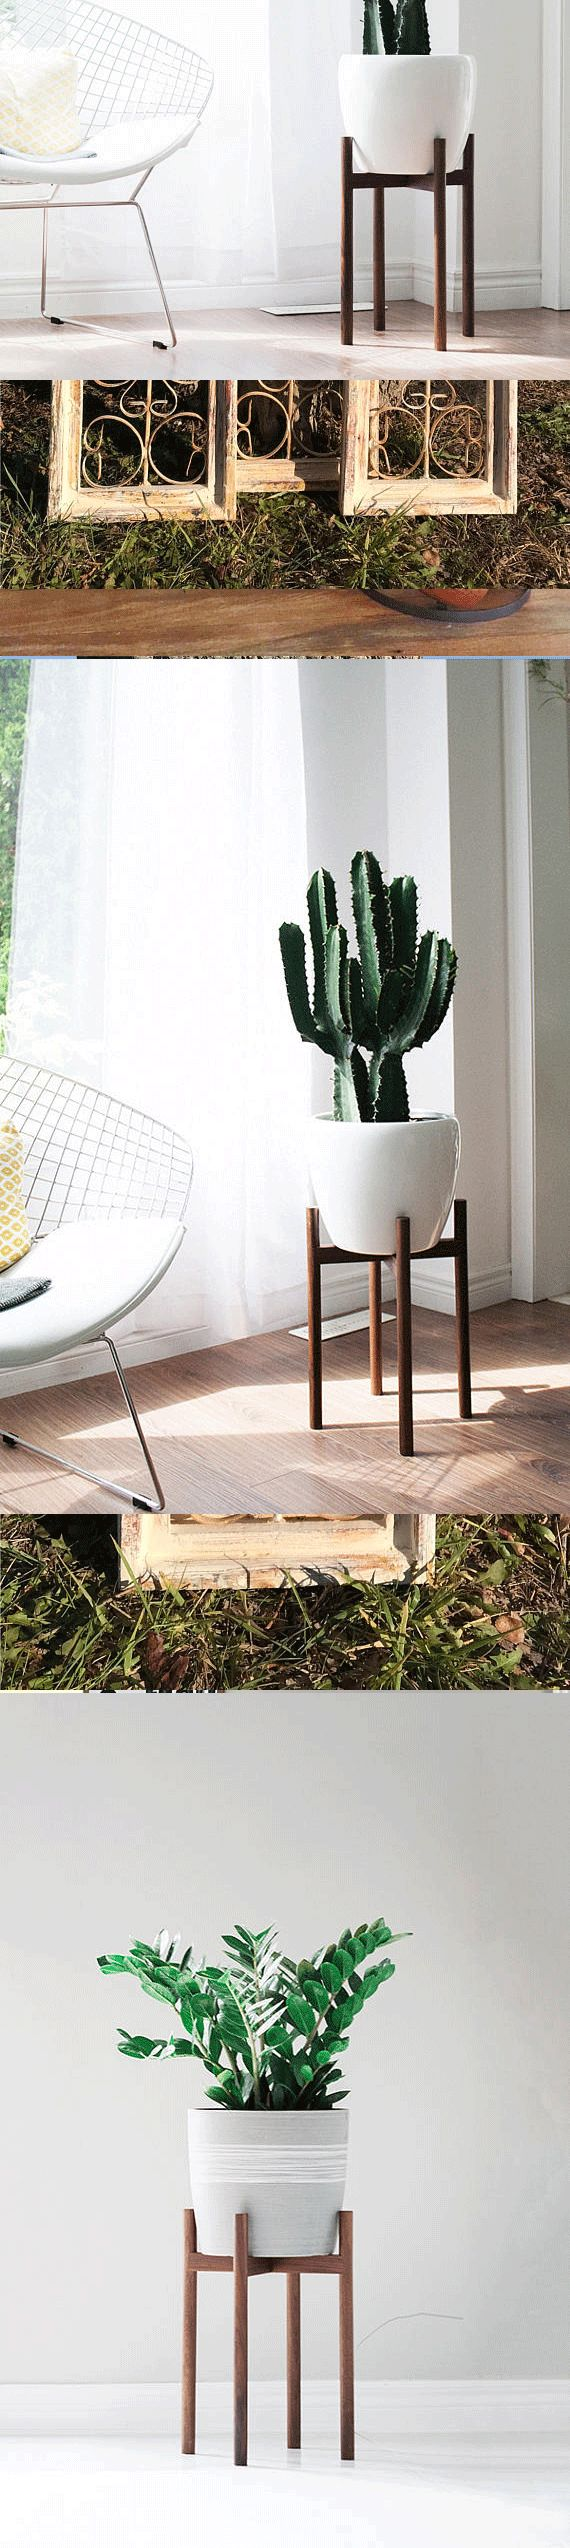 Best 25+ Modern plant stand ideas on Pinterest | Plant stands ...